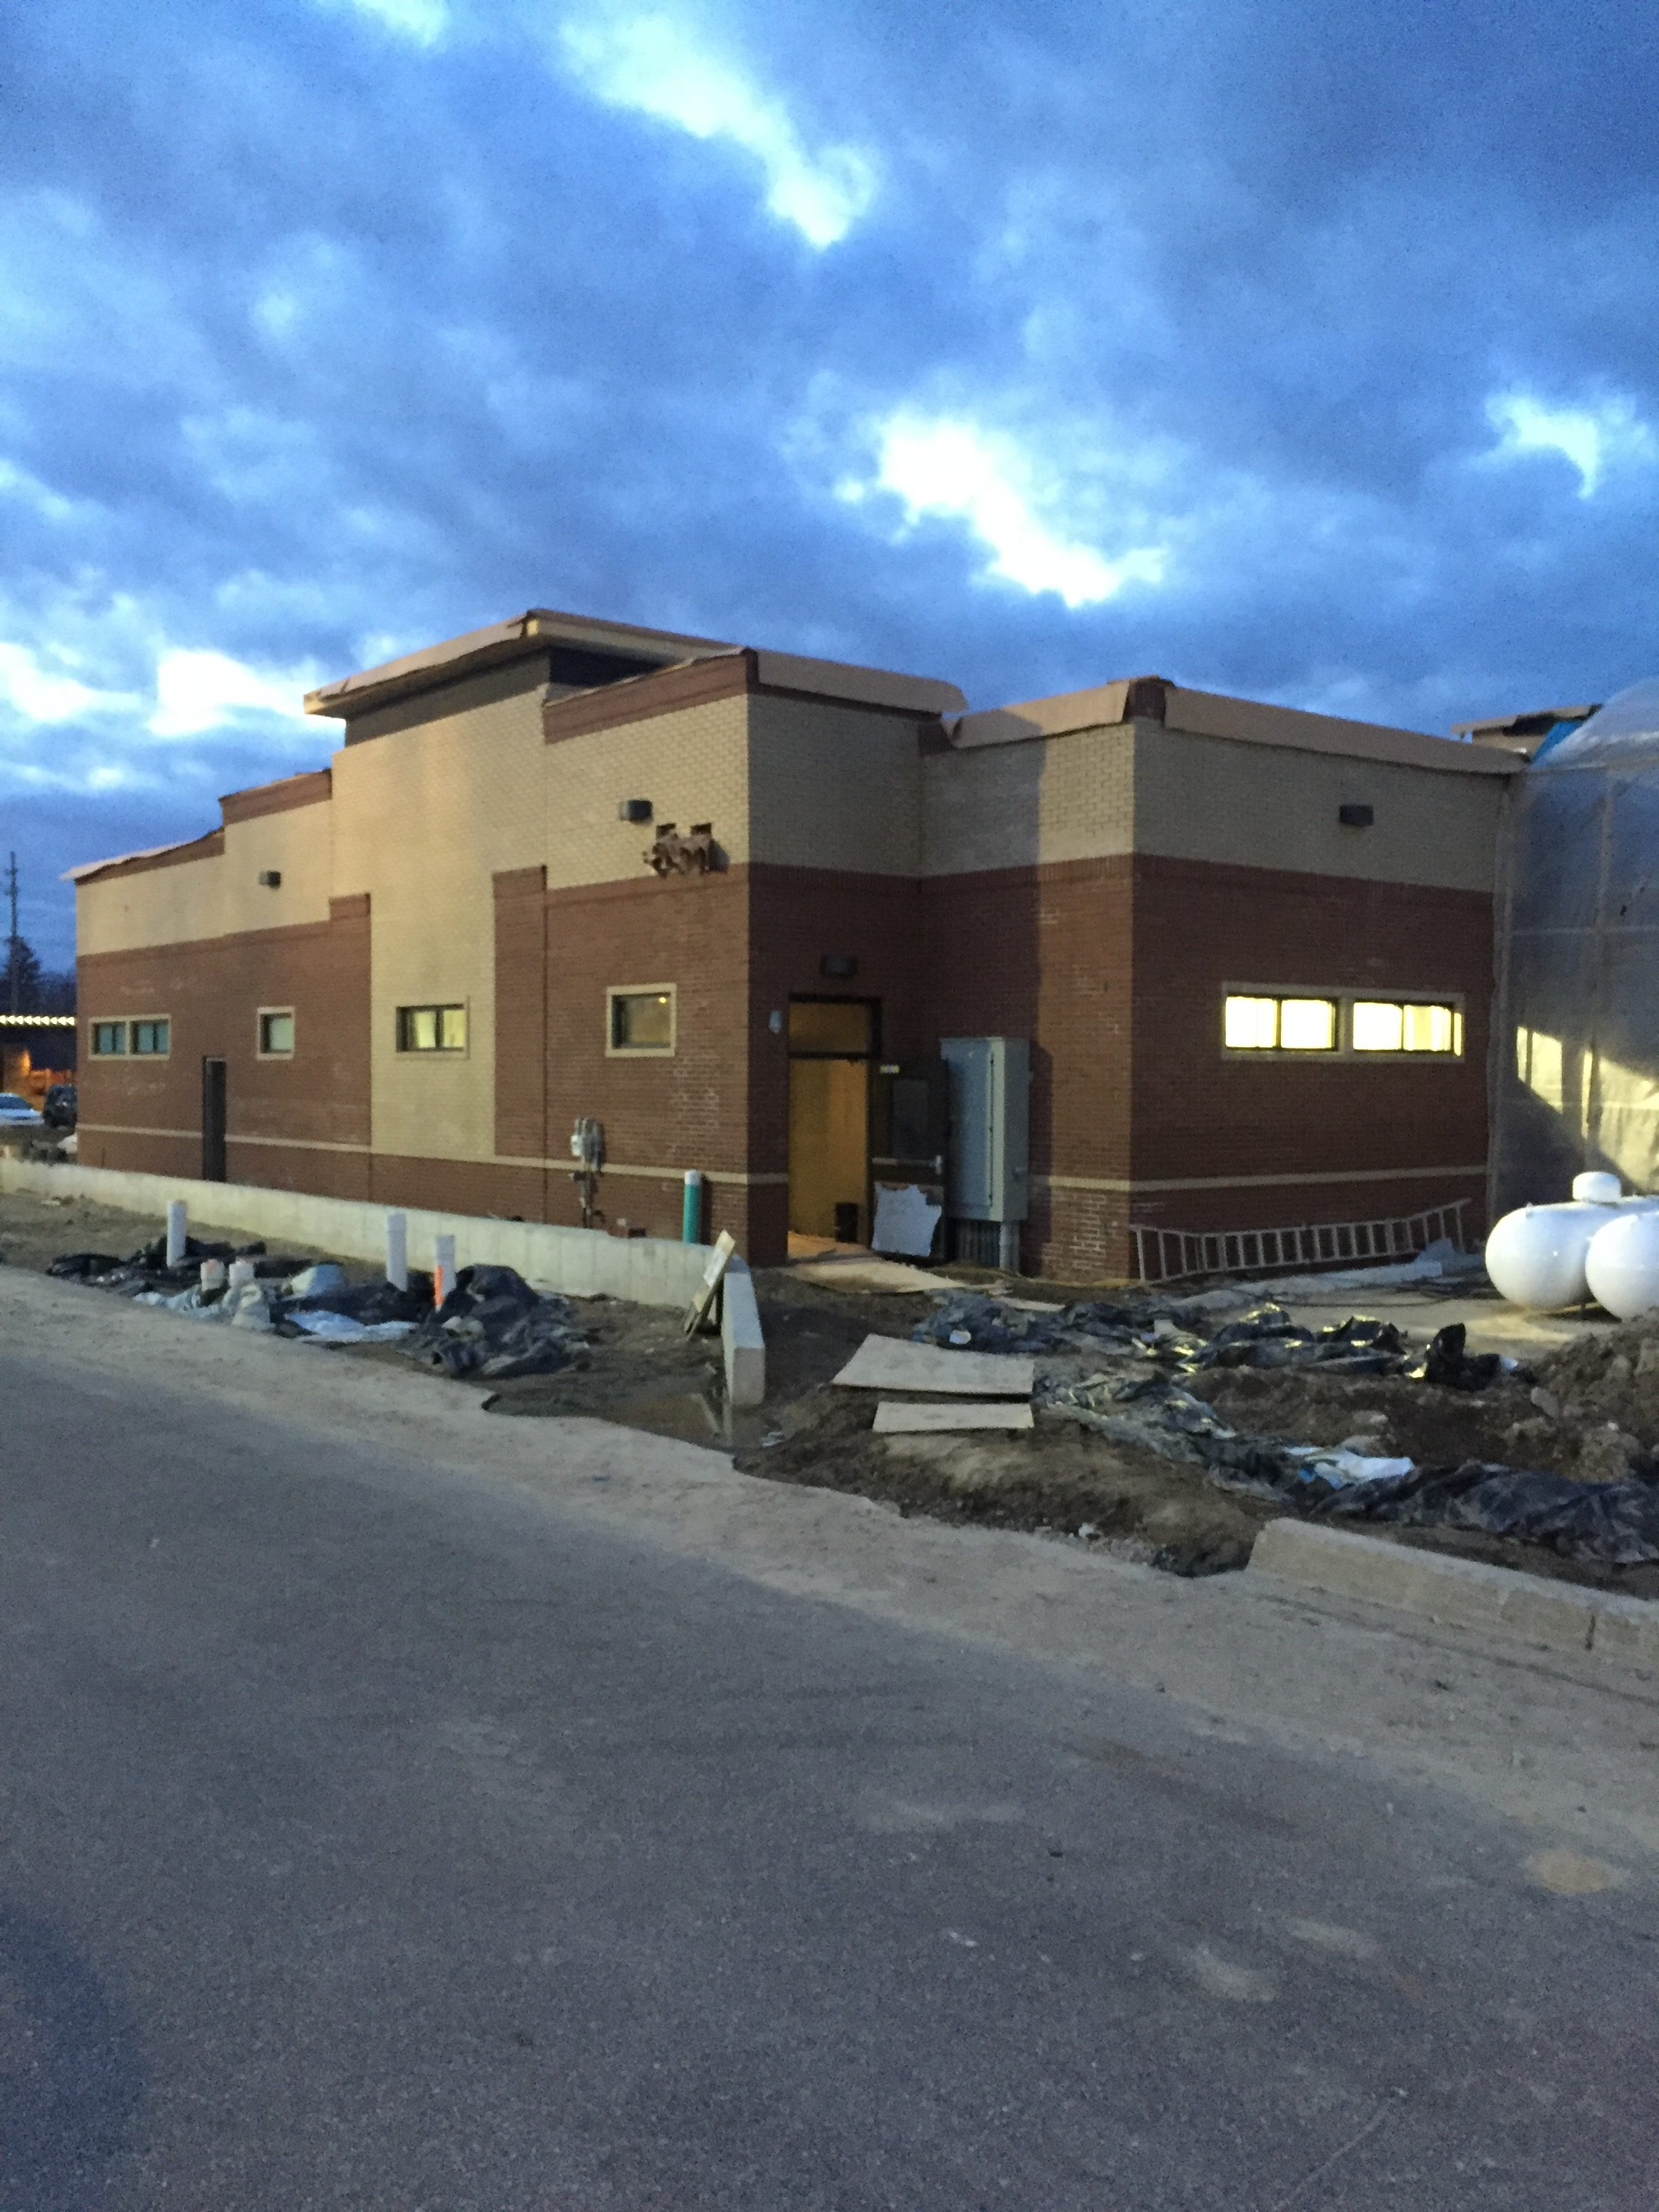 Feb. 14, Chick-fil-A is being constructed in front of Meijer.